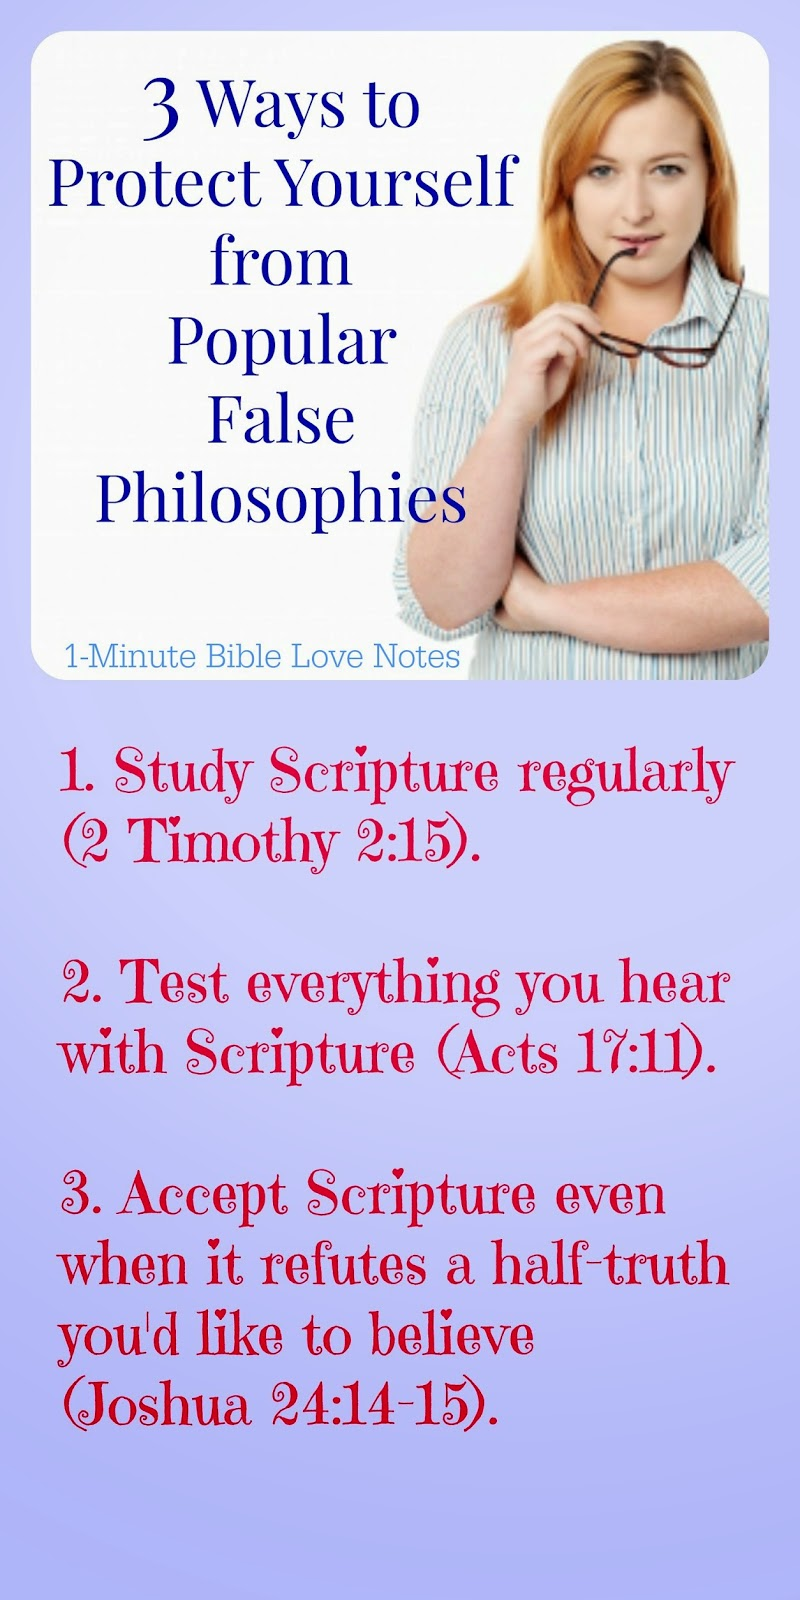 2 Timothy 2:15, Acts 17:11, false philosophies